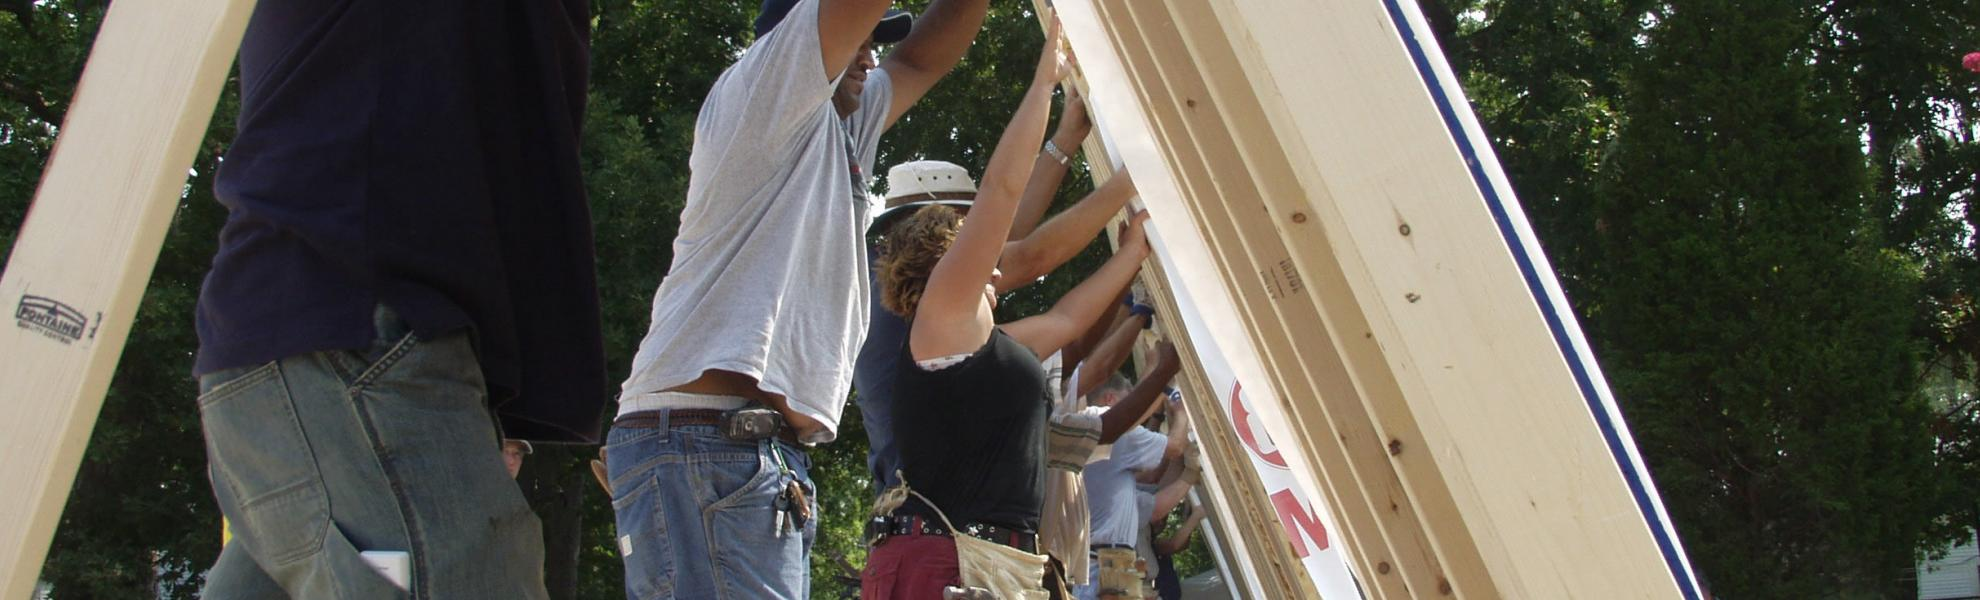 Patuxent Habitat for Humanity serving Calvert & St. Mary's Counties in Southern MD